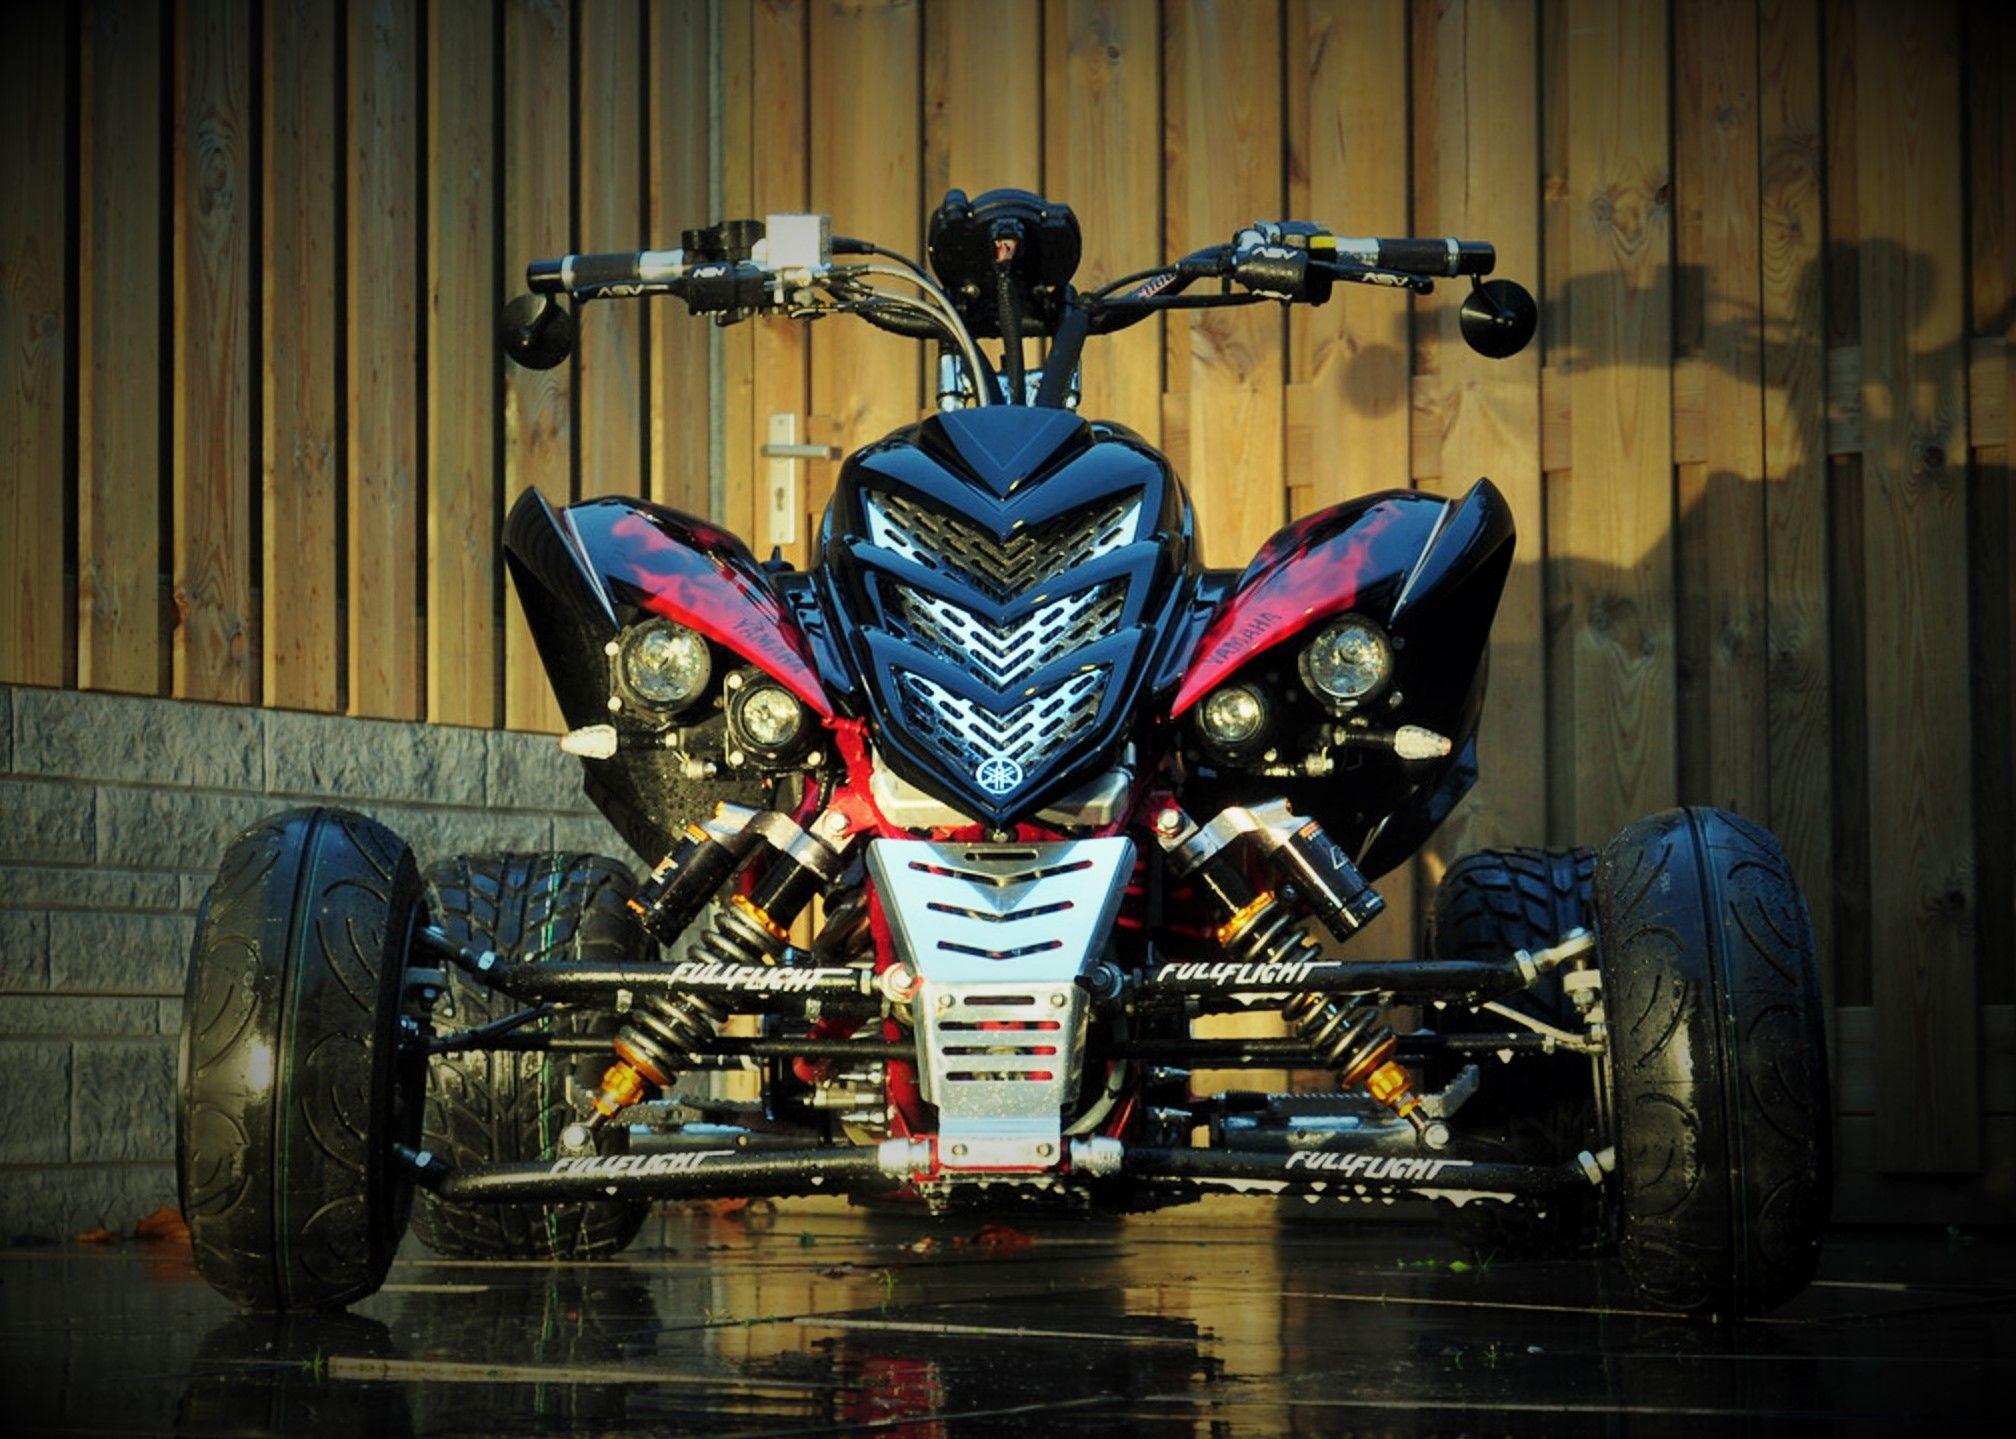 The World's First Street Legal Yamaha 700cc Raptor with On-Board